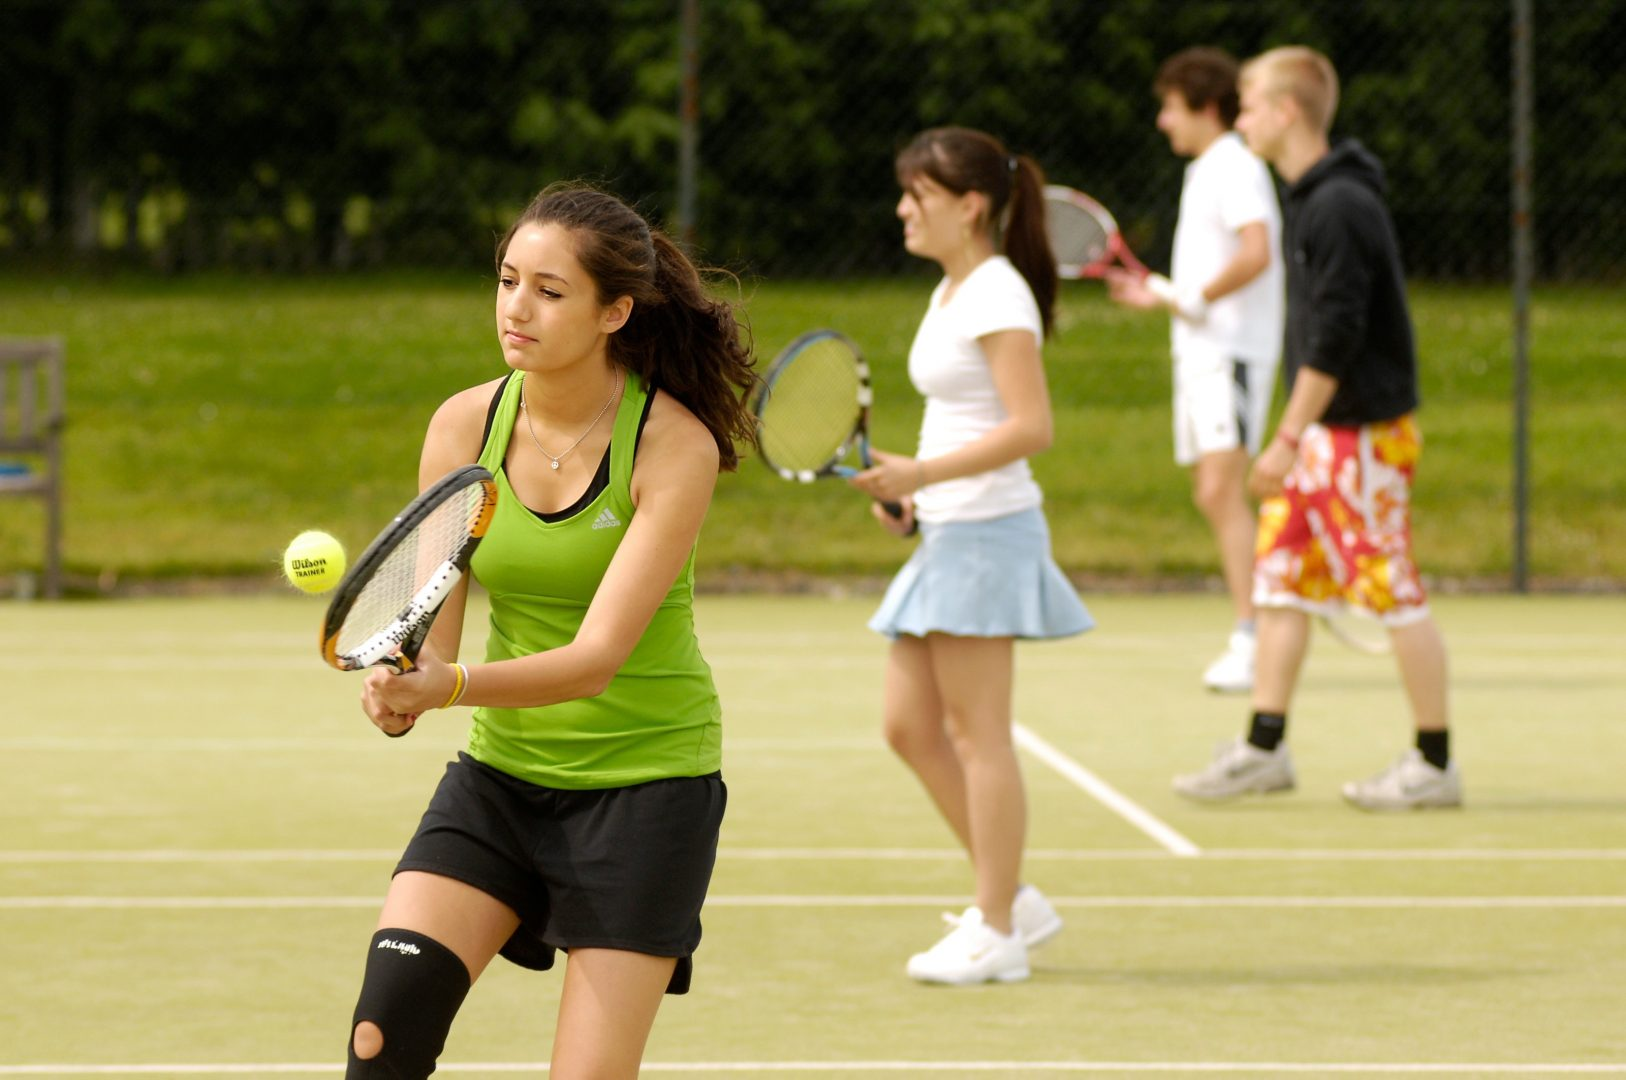 Student of the leadership camp in St. Andrews playing tennis - Leadership camp at university of Cambridge, Yale or ST. Andrews